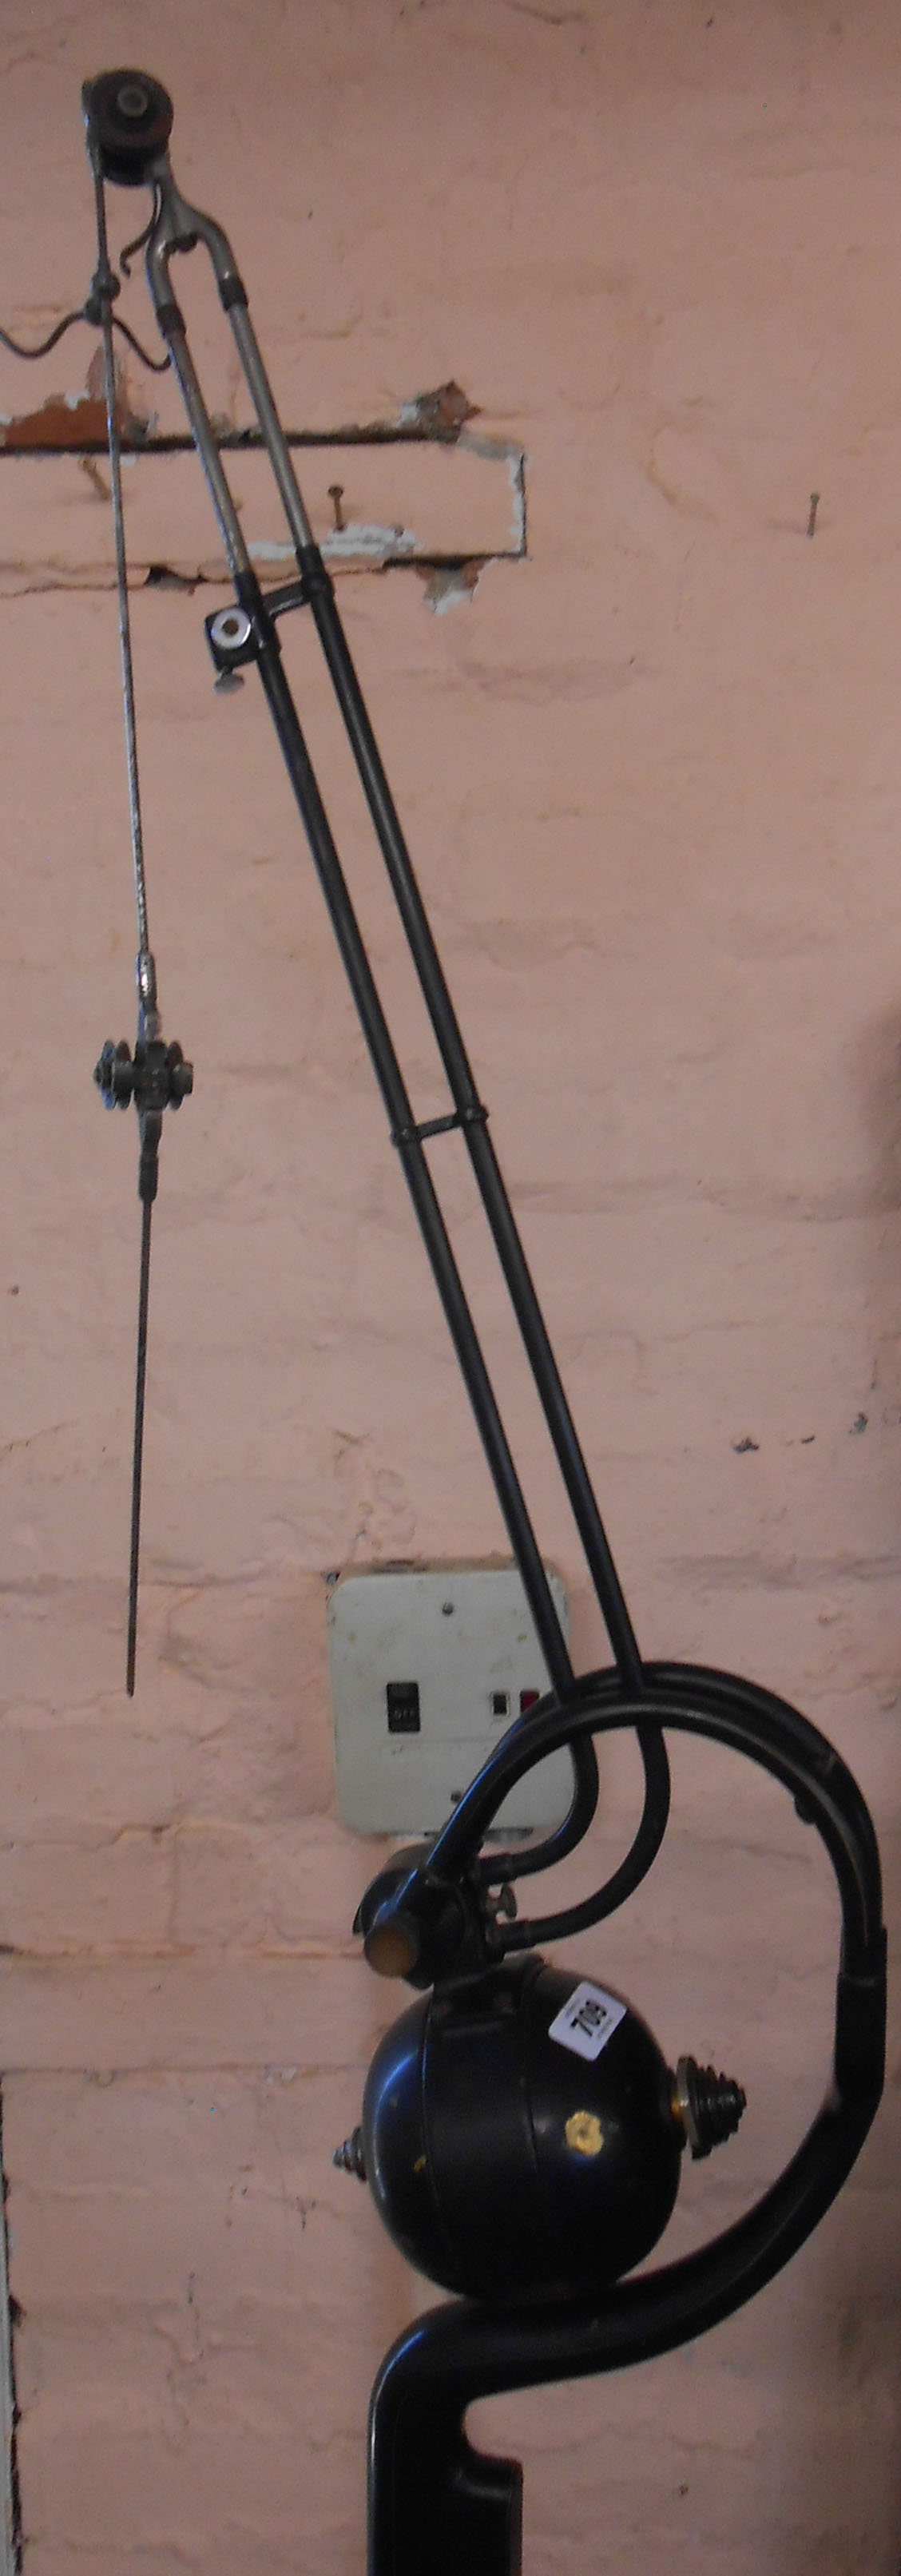 A vintage dentist's drill assembly with cast iron base - later conversion to lamp